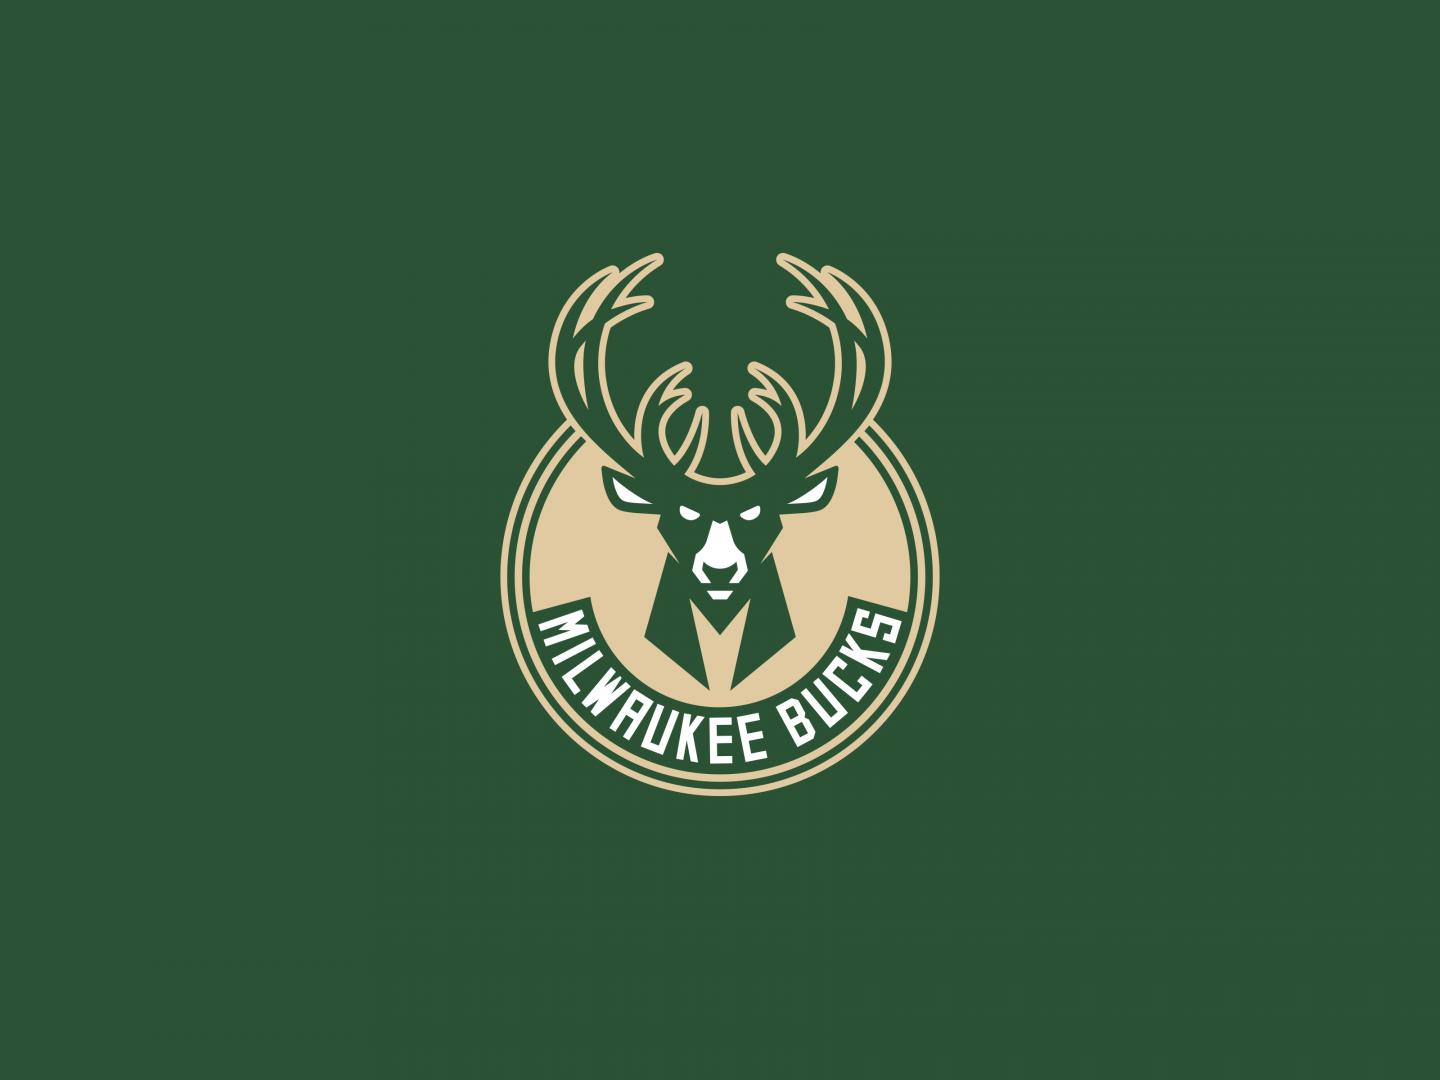 Milwaukee Bucks Brand Identity Renovation Thumbnail